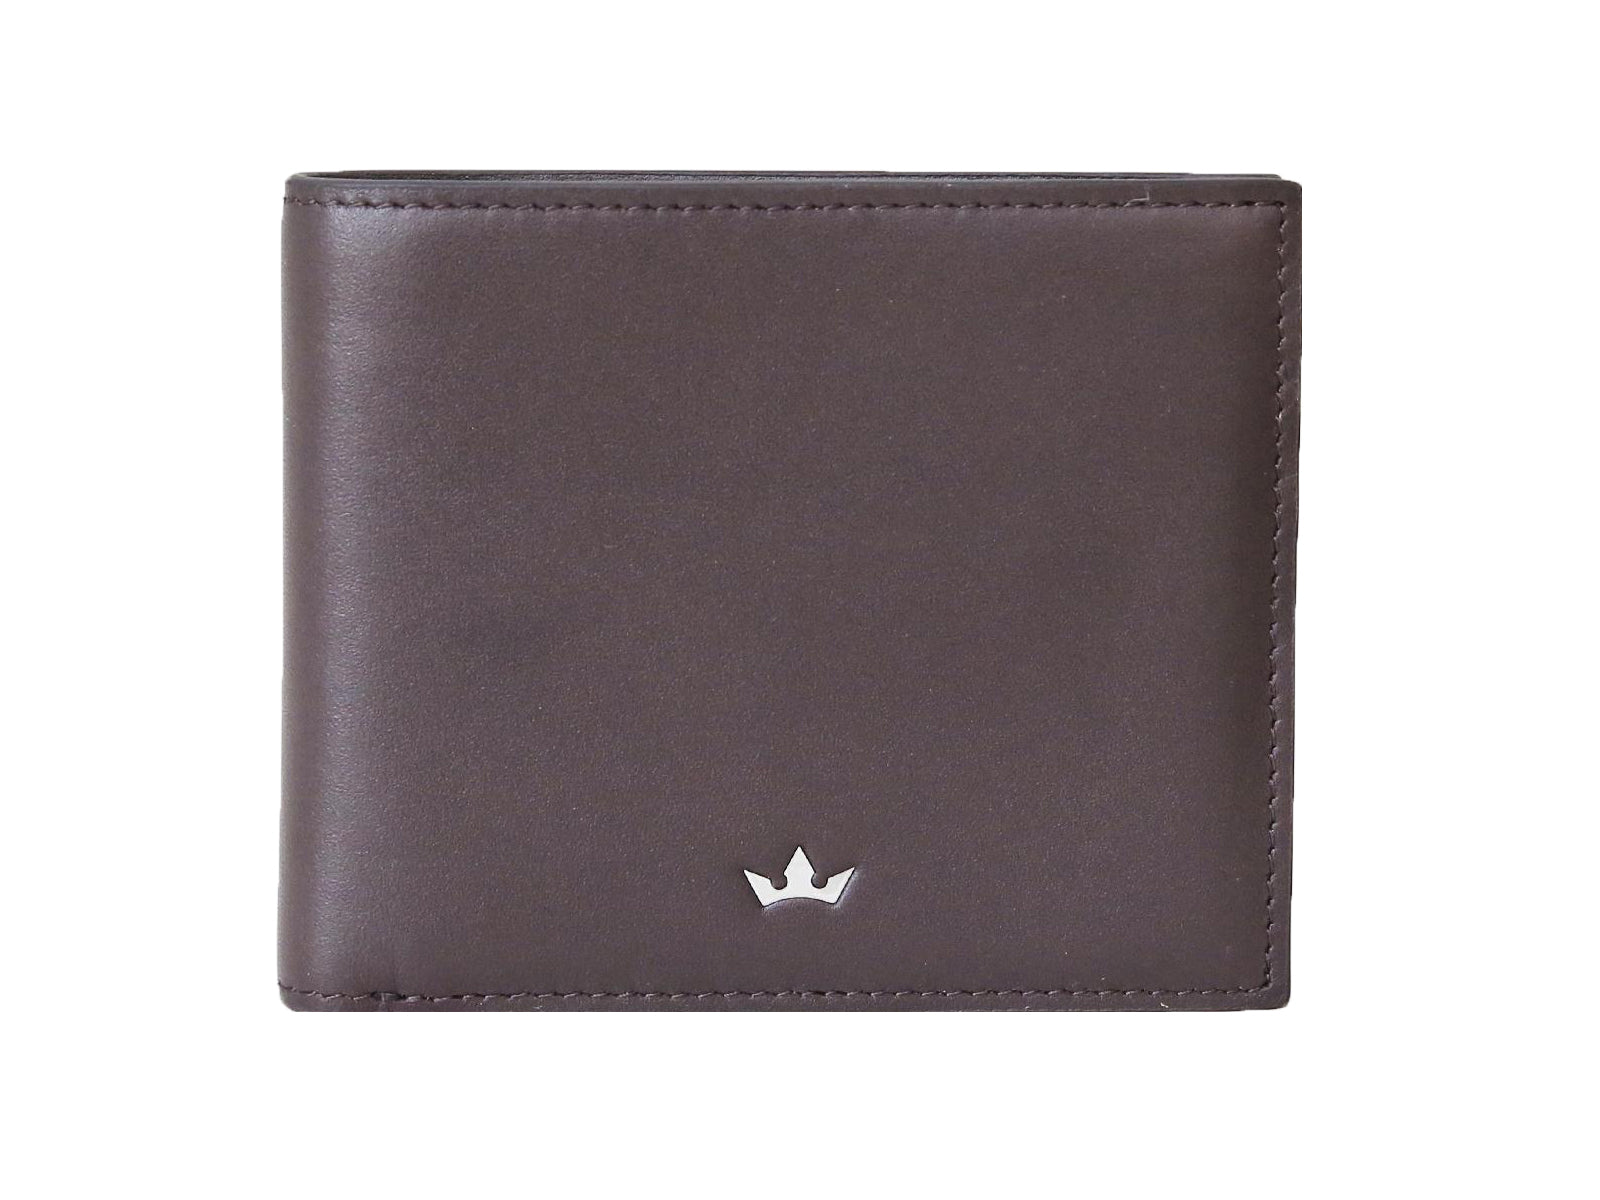 Roderer Bifold Wallet 8 Card Roma Brown